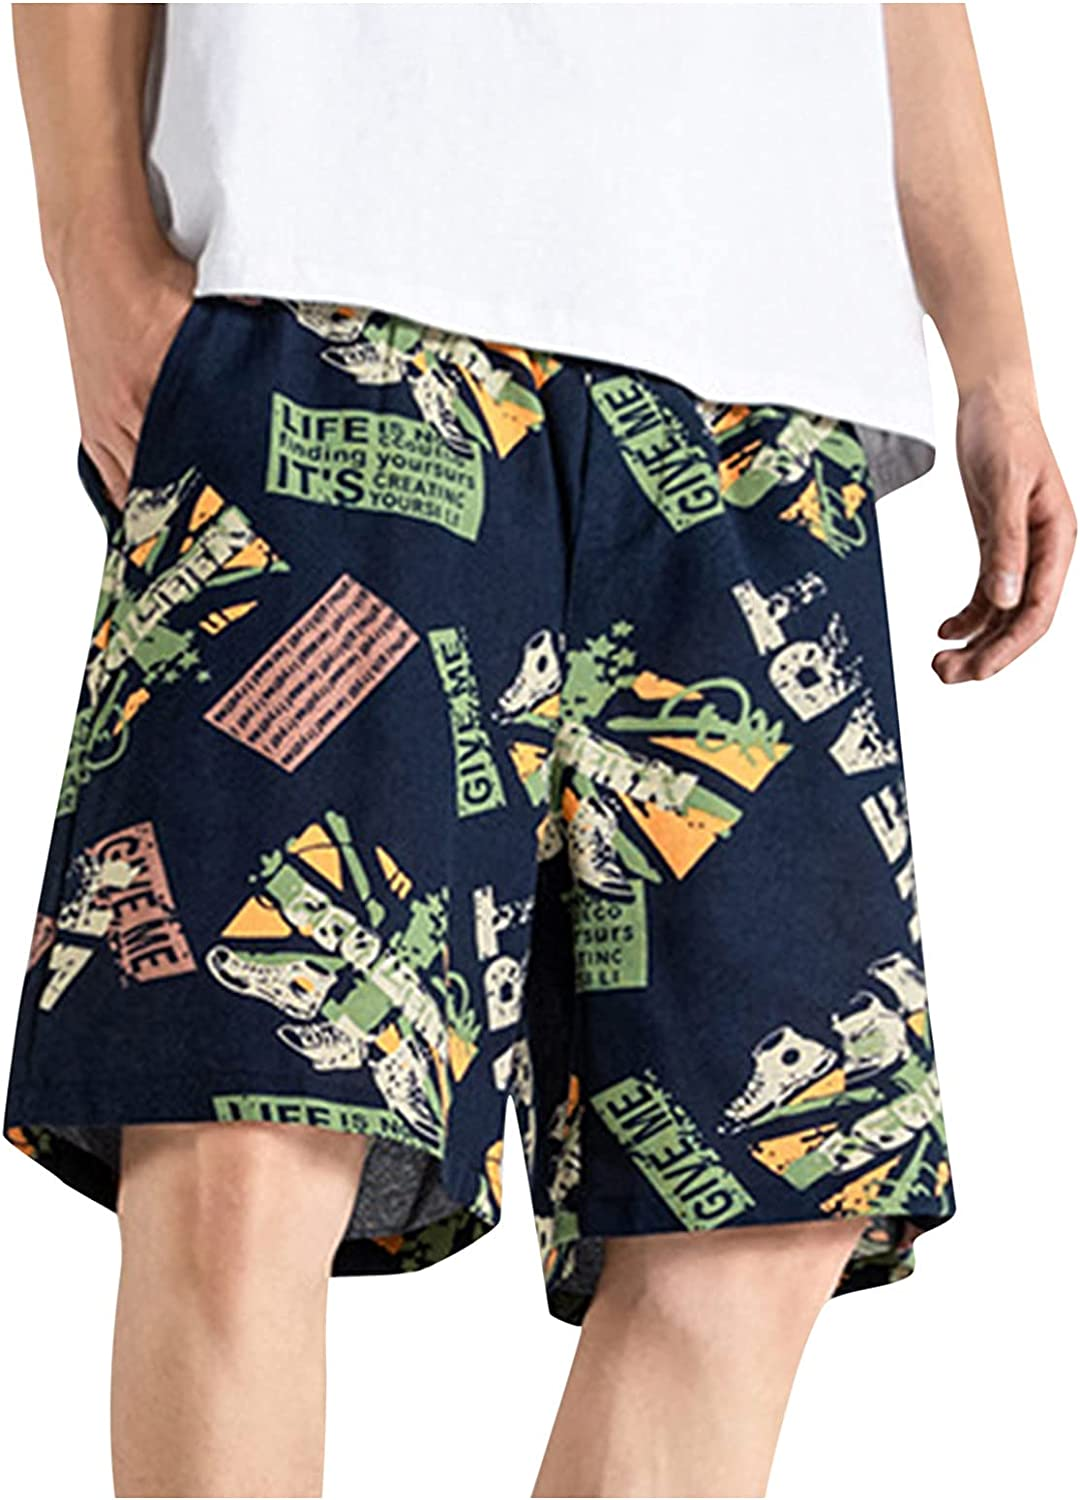 Mens Baggy Shorts Summer Beach Surfing Swim Trunks Classic Fit Beefy Board Shorts Workout Sports Quick Dry Sweatpants